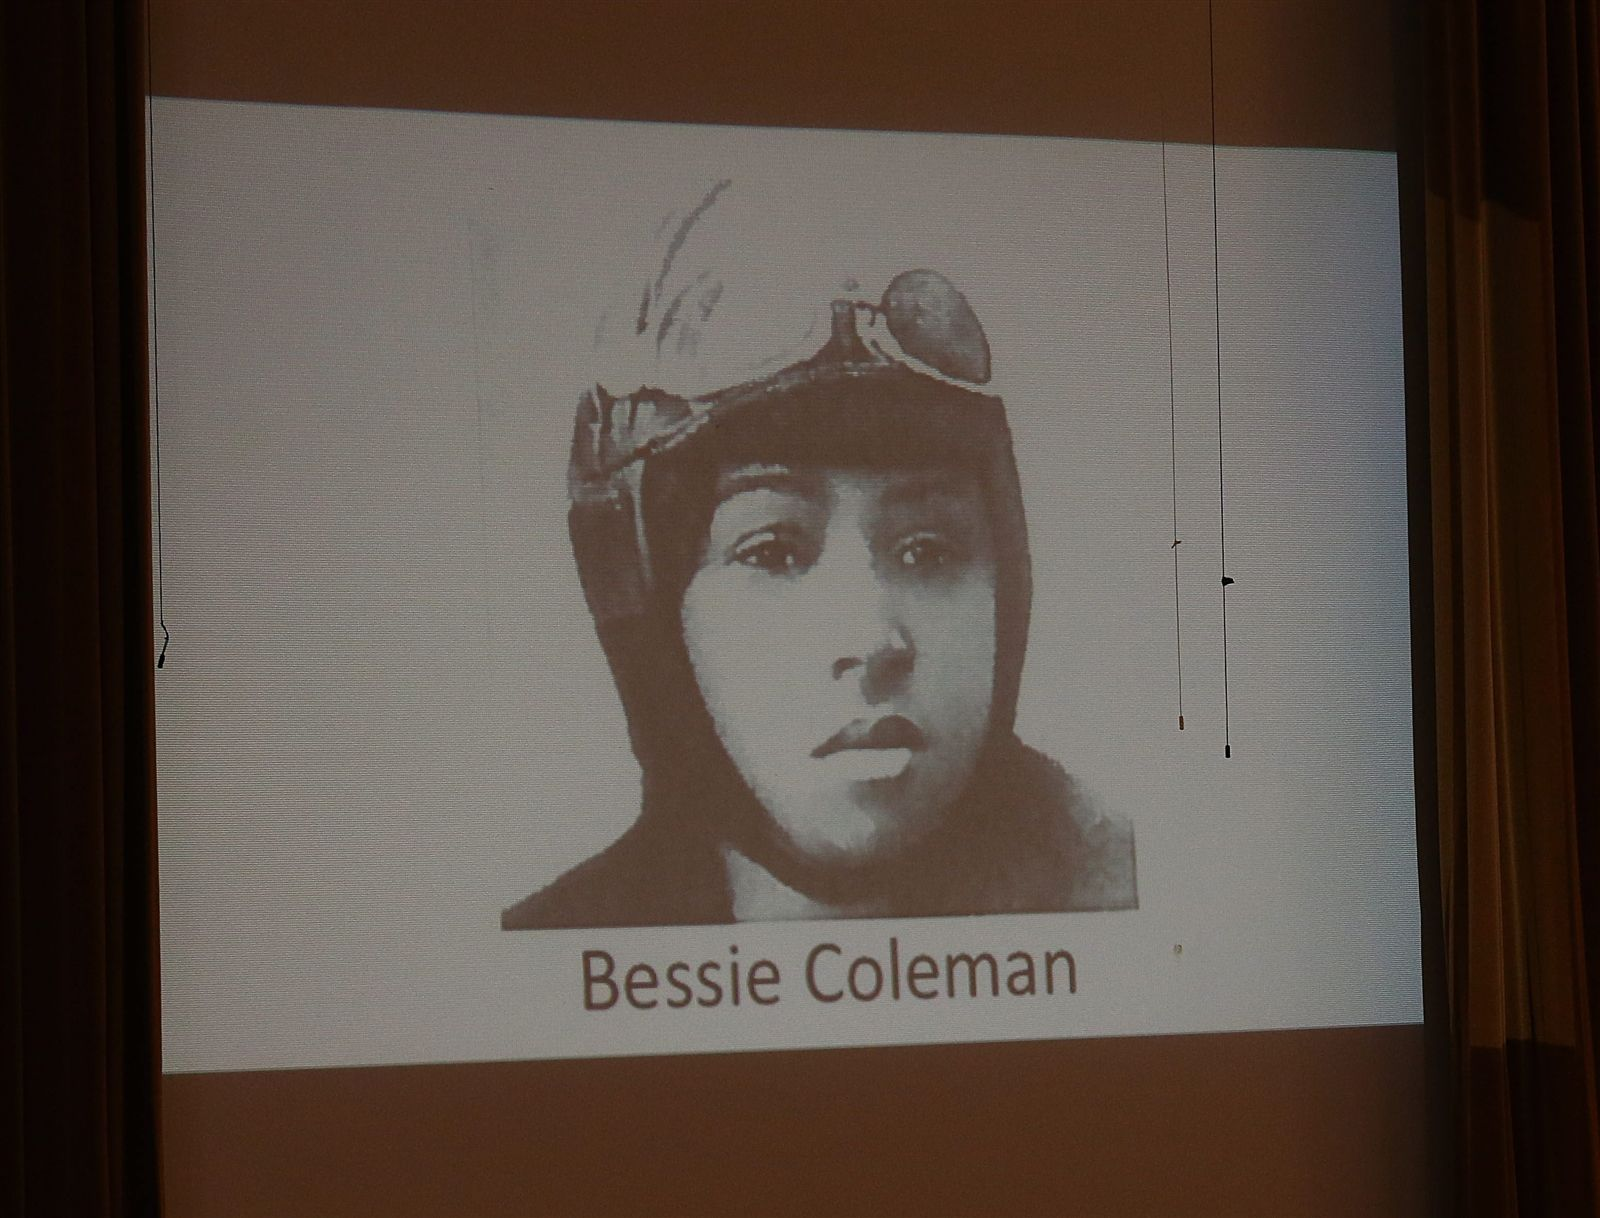 This is a photo of Bessie Coleman, the first female pilot of African American descent who got her license in 1921.